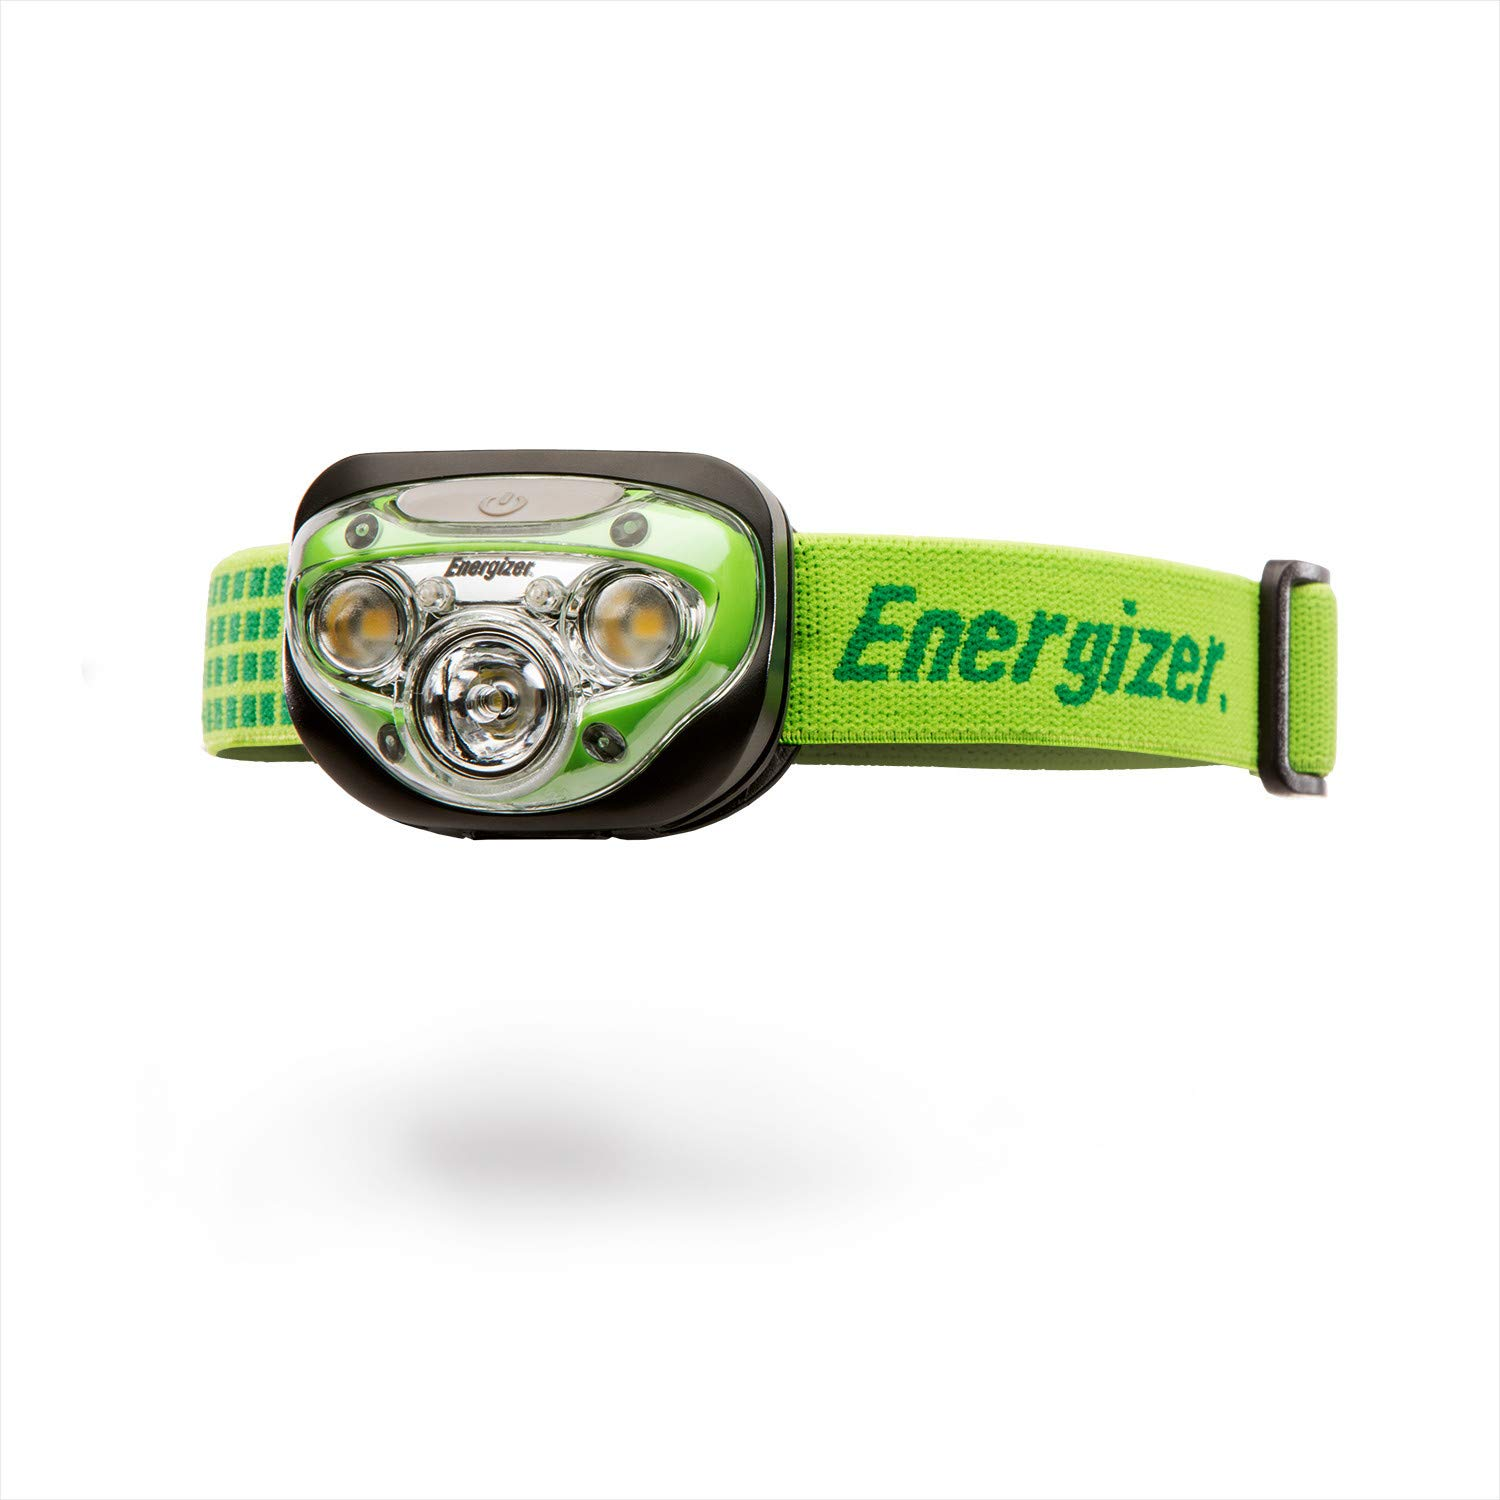 Energizer Vision Ultra Rechargeable Headlamp Flashlight by Energizer